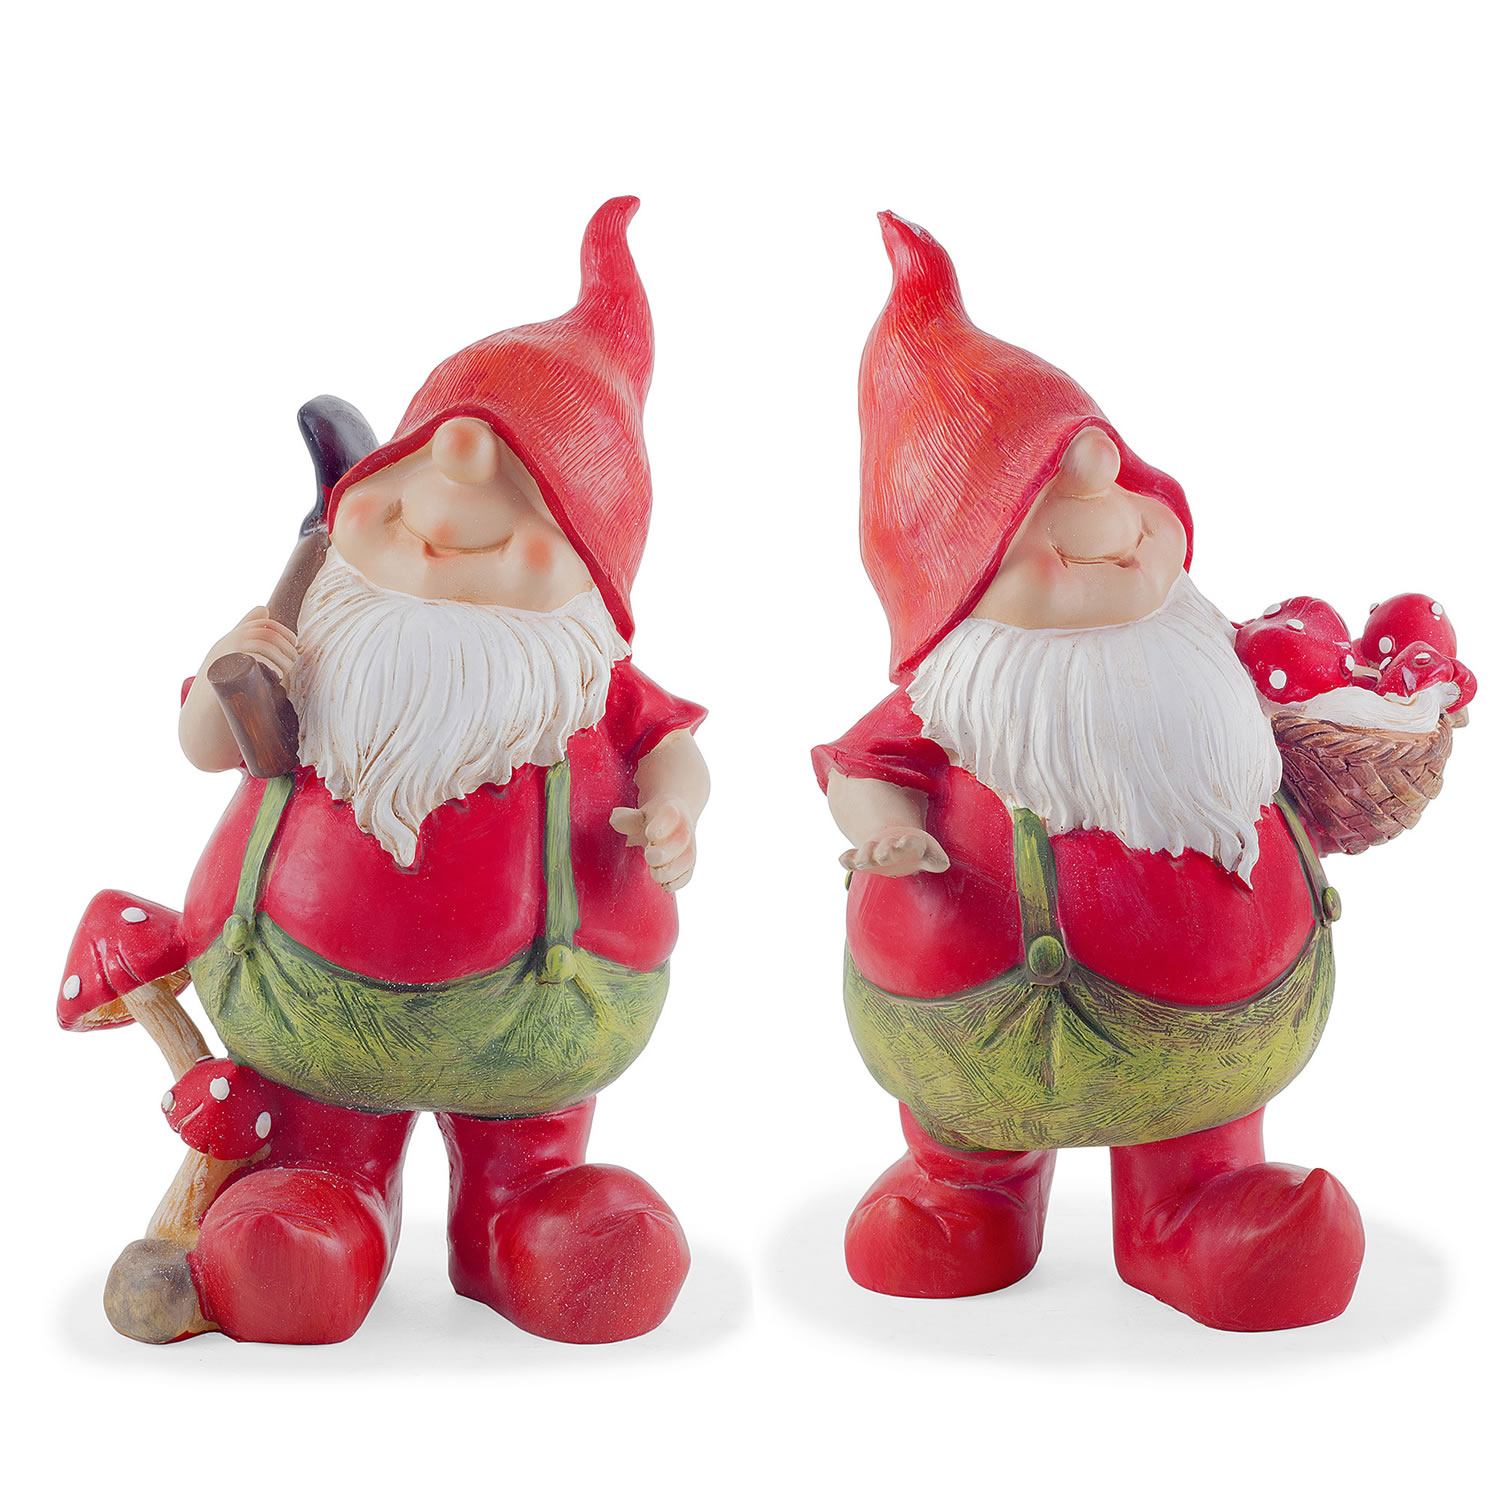 Garden Gnomes On Sale: Max & Mason The Traditional Red Gardening Gnome Ornament